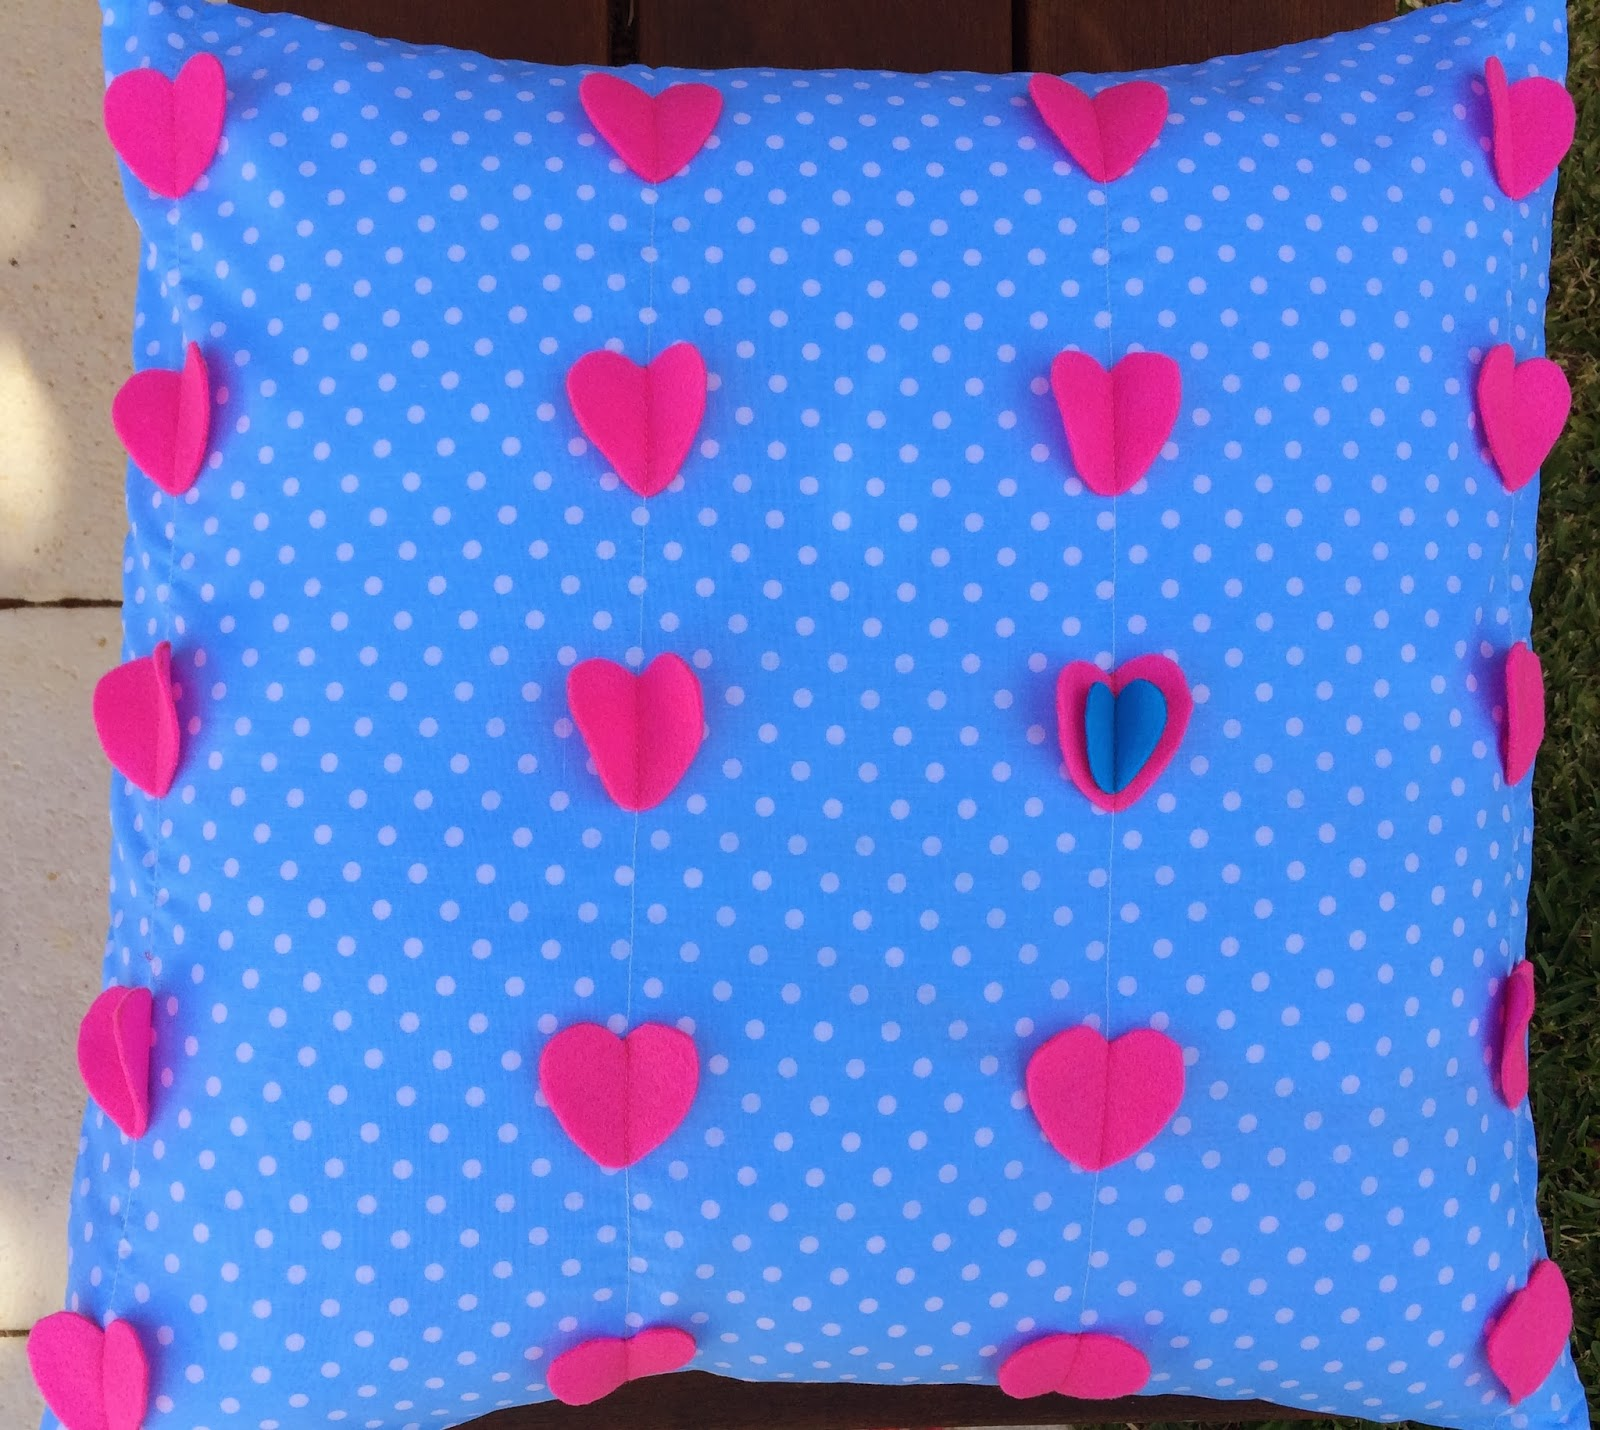 Squeezy Love Pillow